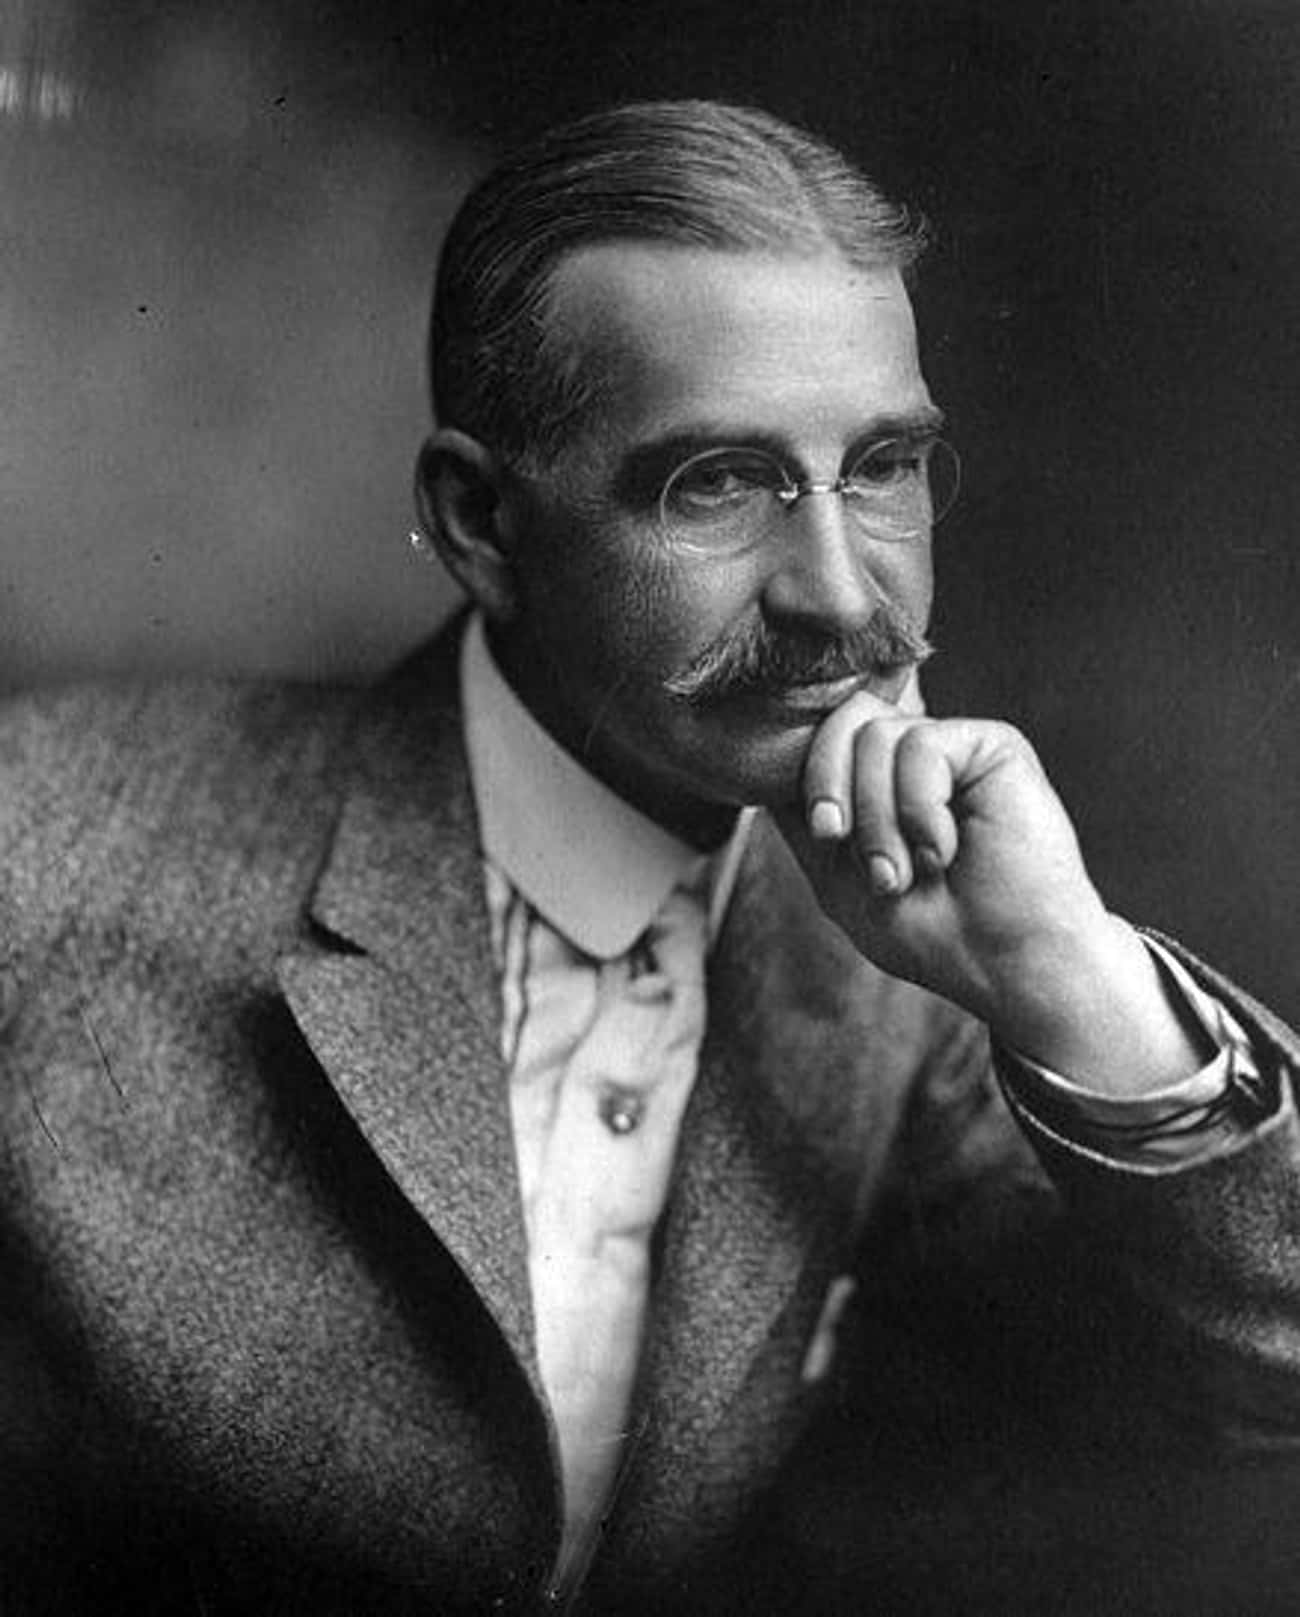 L. Frank Baum Lived Only Block is listed (or ranked) 3 on the list Strange Things You Definitely Didn't Know About 'The Wizard of Oz'